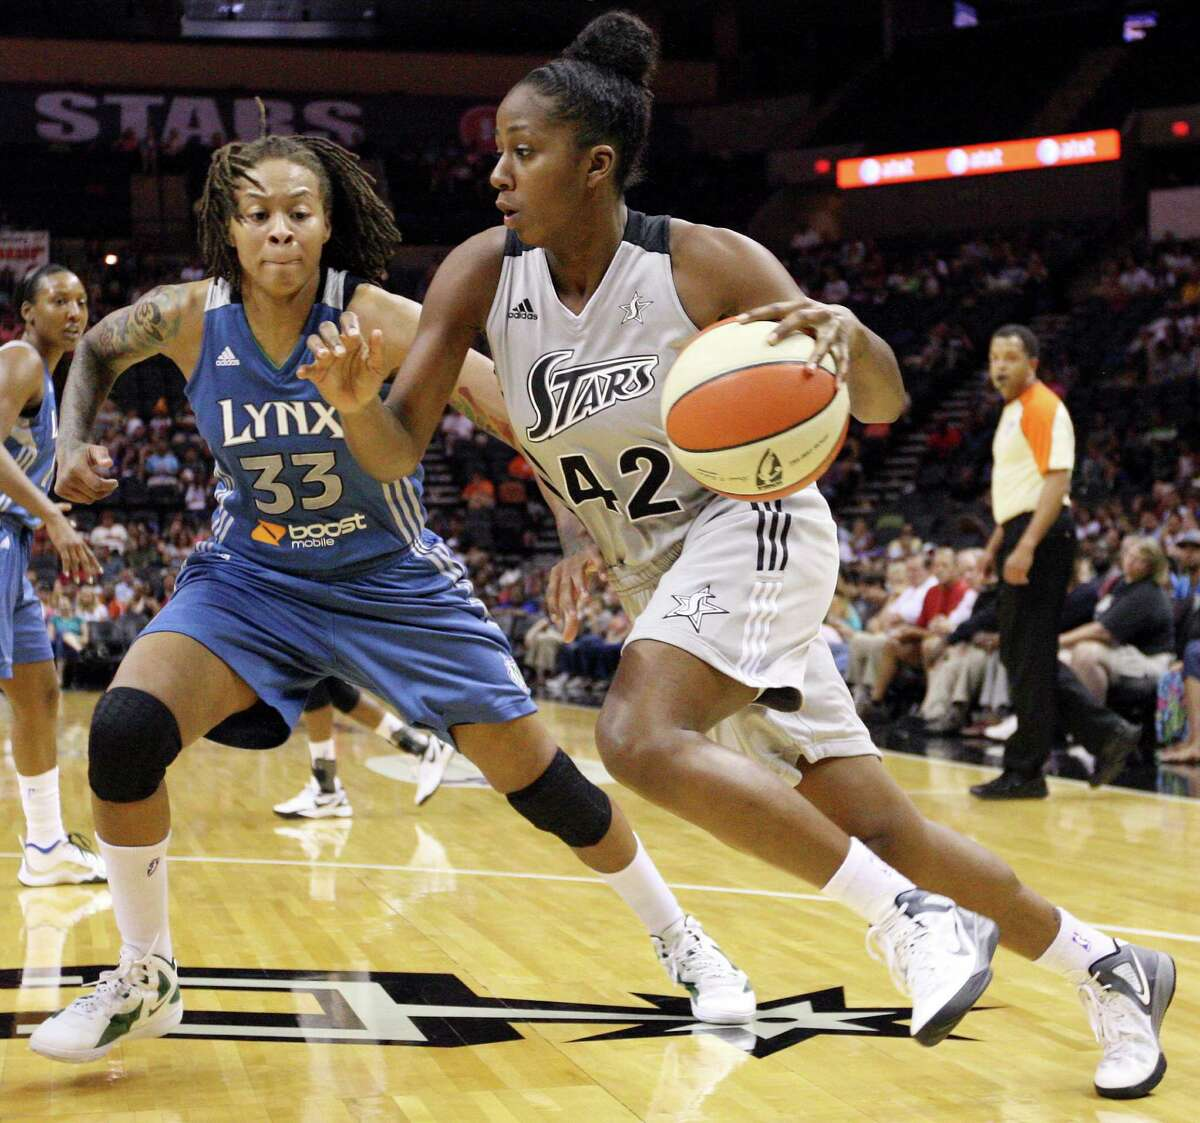 The Silver Stars' Shenise Johnson looks for room around the Minnesota Lynx's Seimone Augustus during first half action on Sunday, July 1, 2012, at the AT&T Center.